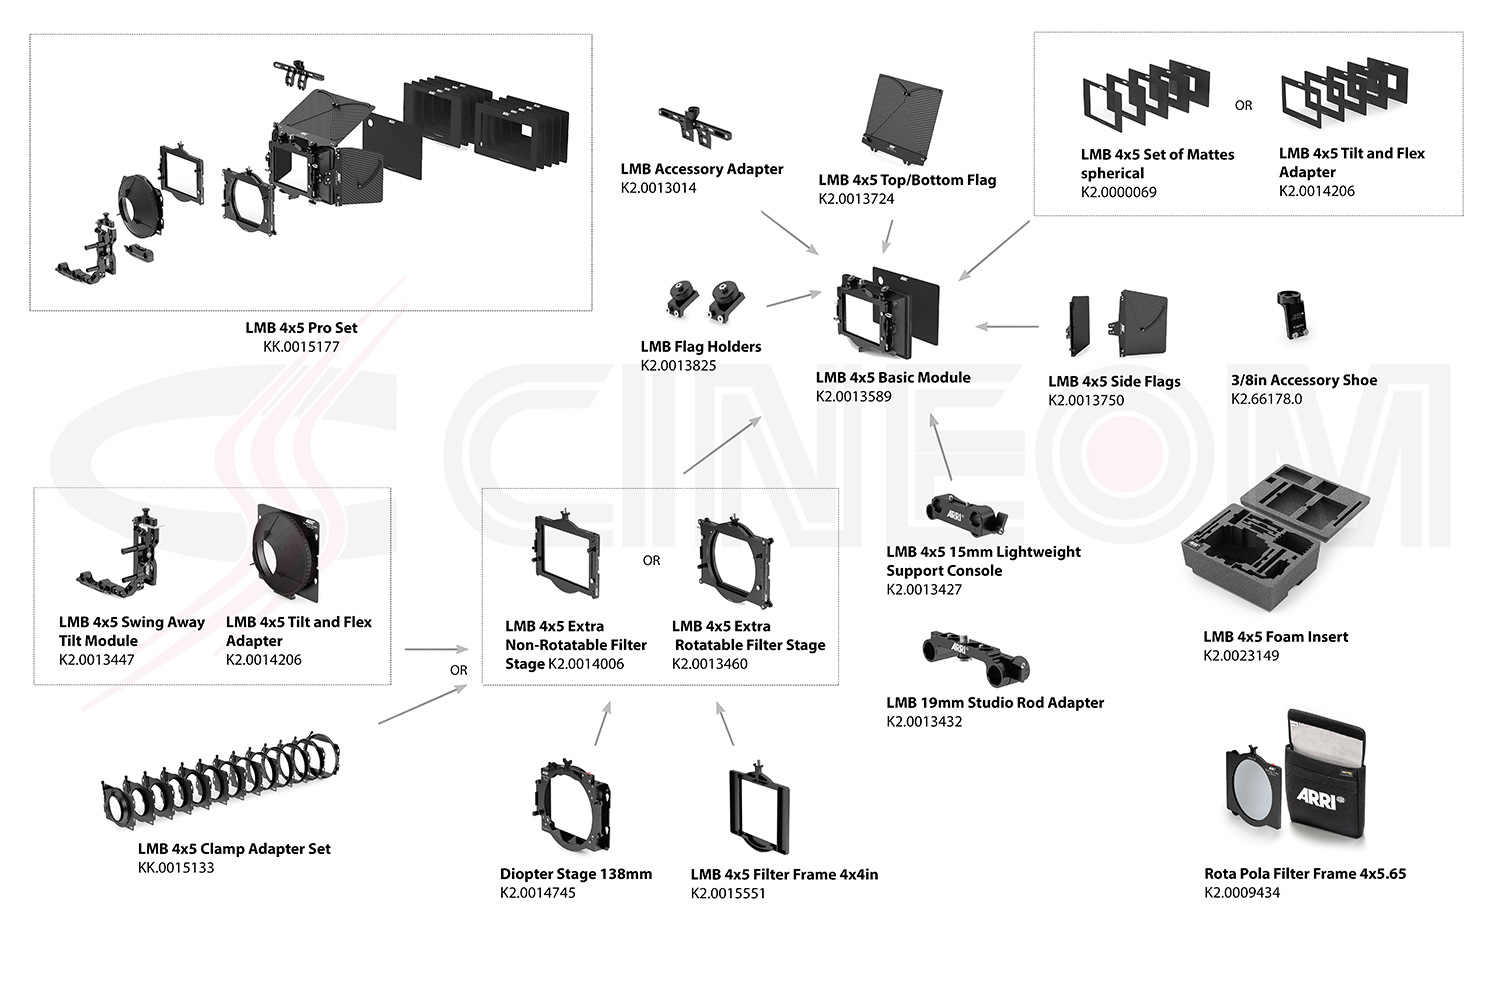 08 ARRI LMB 4x5 Pro Set with LMB 4x5 Clamp On Set 3 Stage Configuration Overview